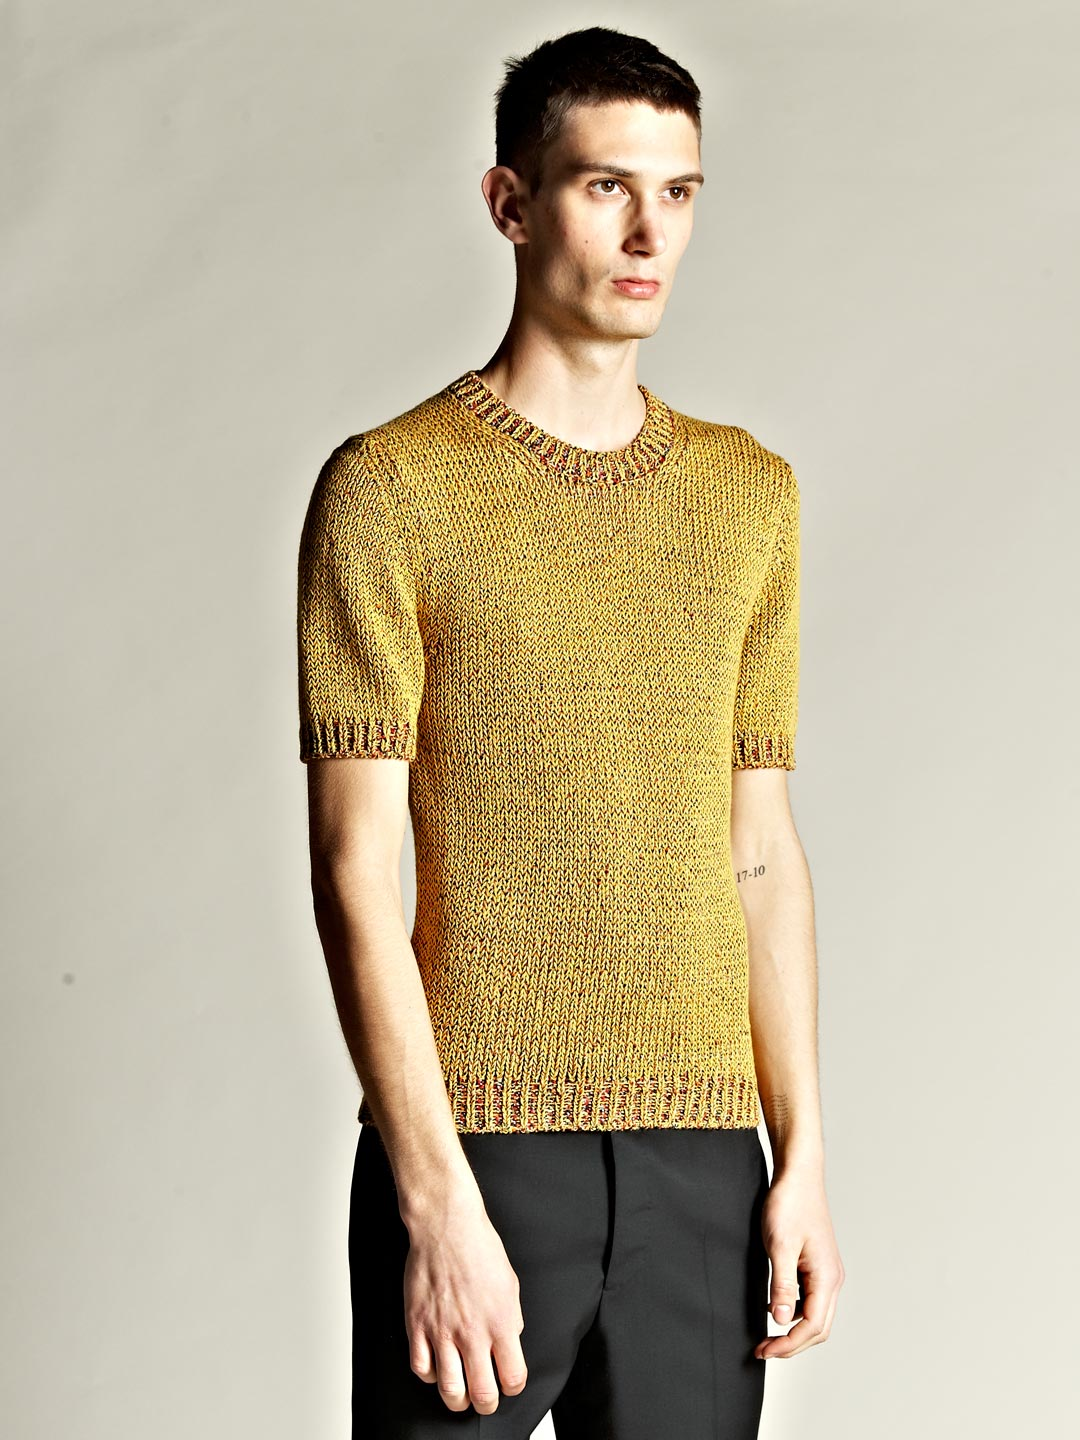 jil sander mens multi yarn short sleeve sweater in yellow. Black Bedroom Furniture Sets. Home Design Ideas